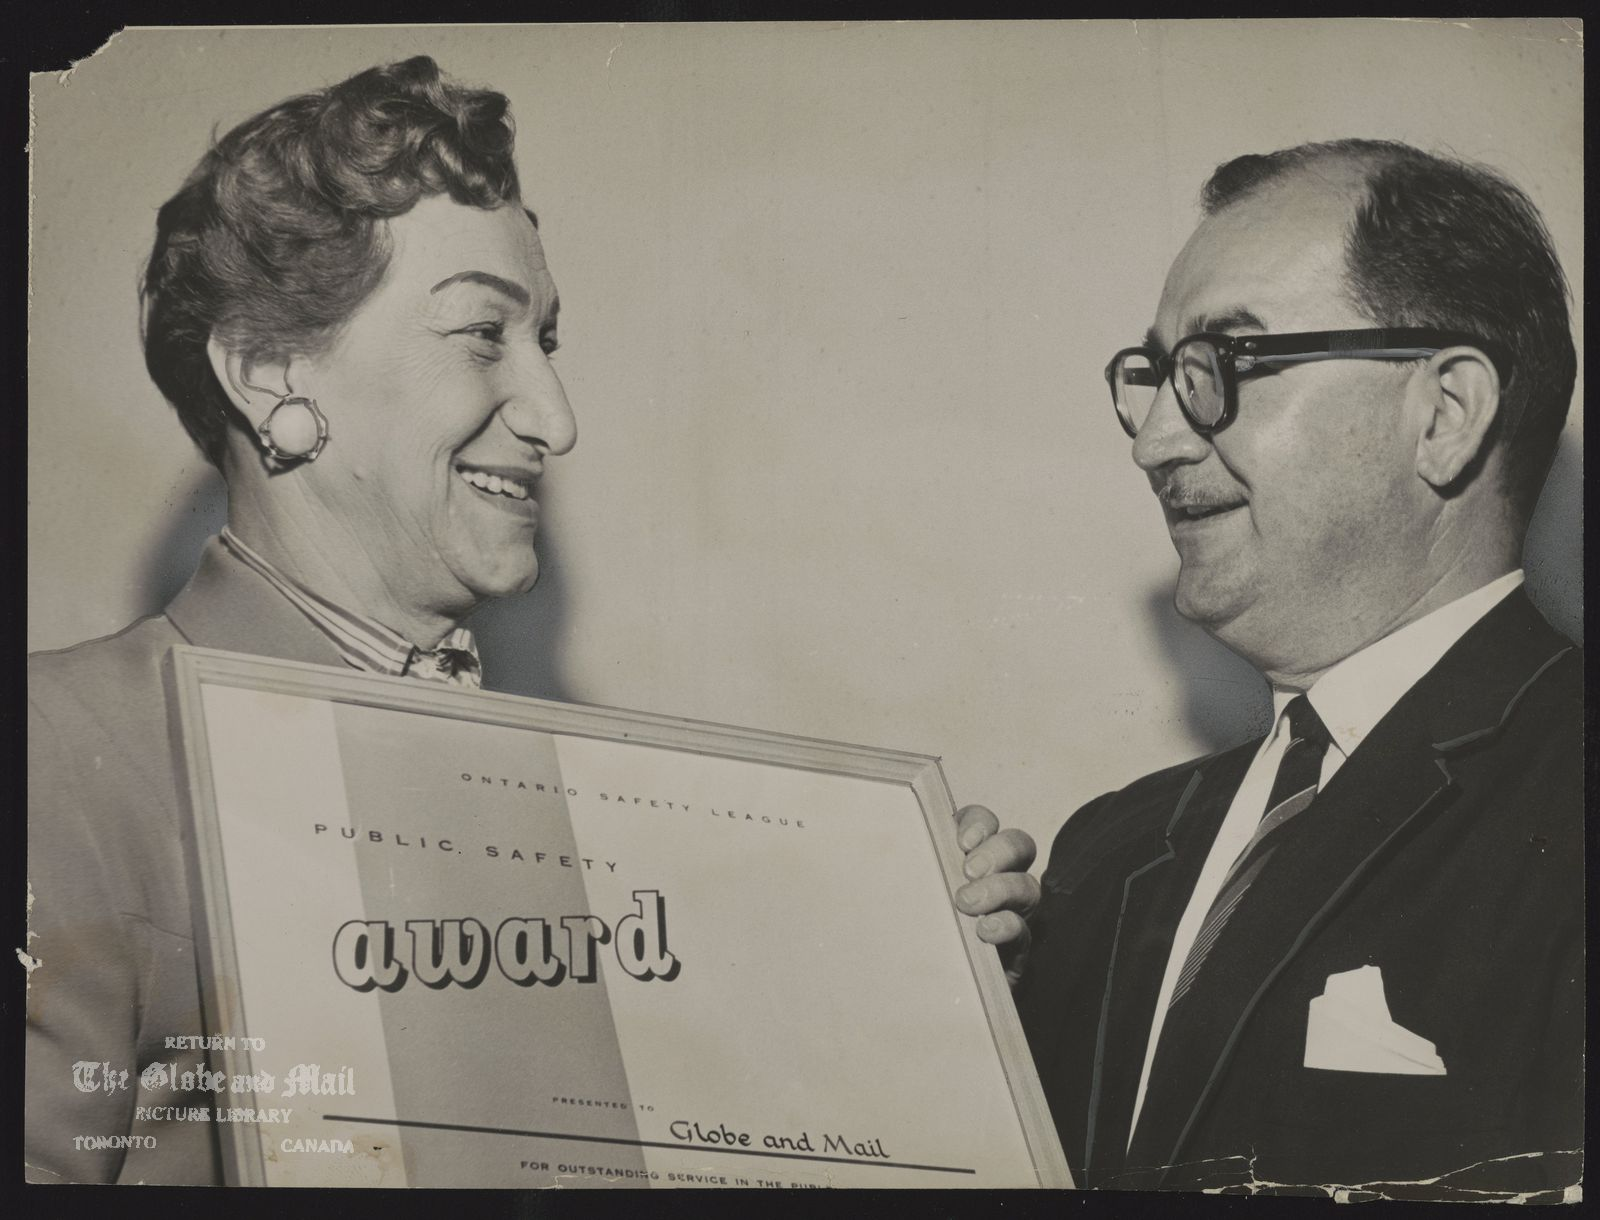 TORONTO GLOBE AND MAIL HISTORICAL-MISCELLANEOUS Miss Bobbie Rosenfeld receives safety Award from Transport Minister Yaremko